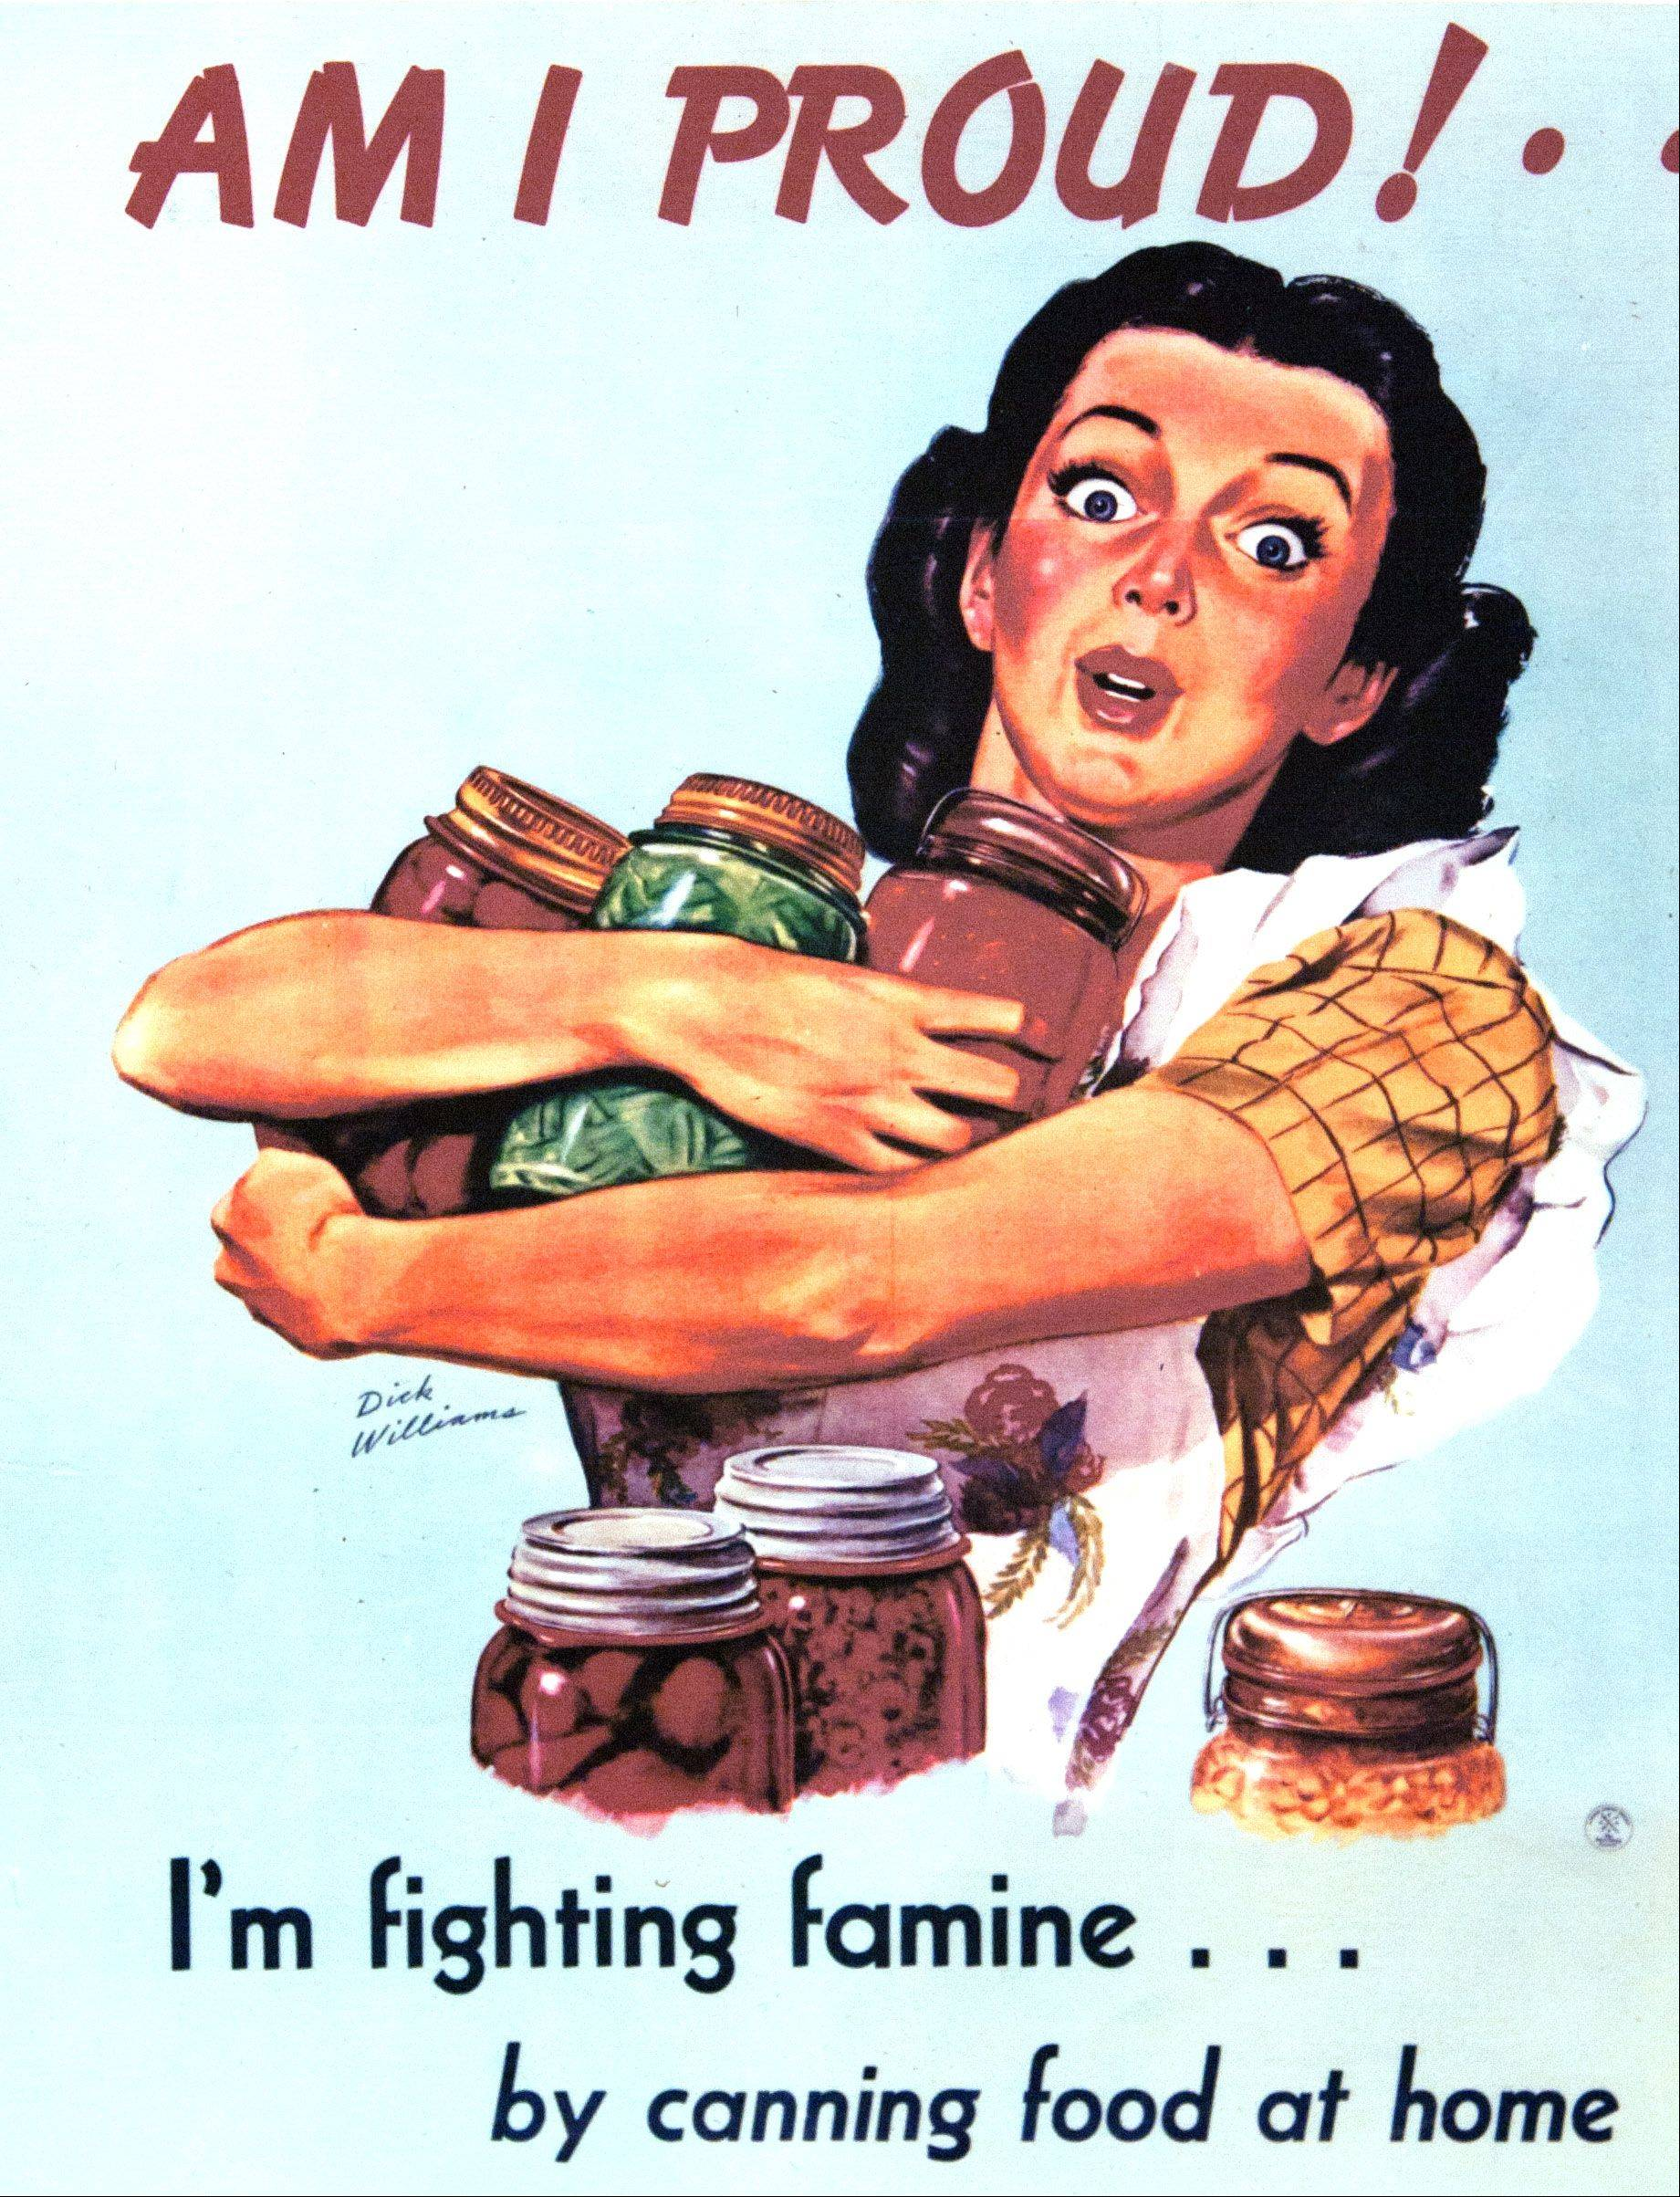 This poster shows how Americans supported the war effort during the 1940s by growing and canning their own food.